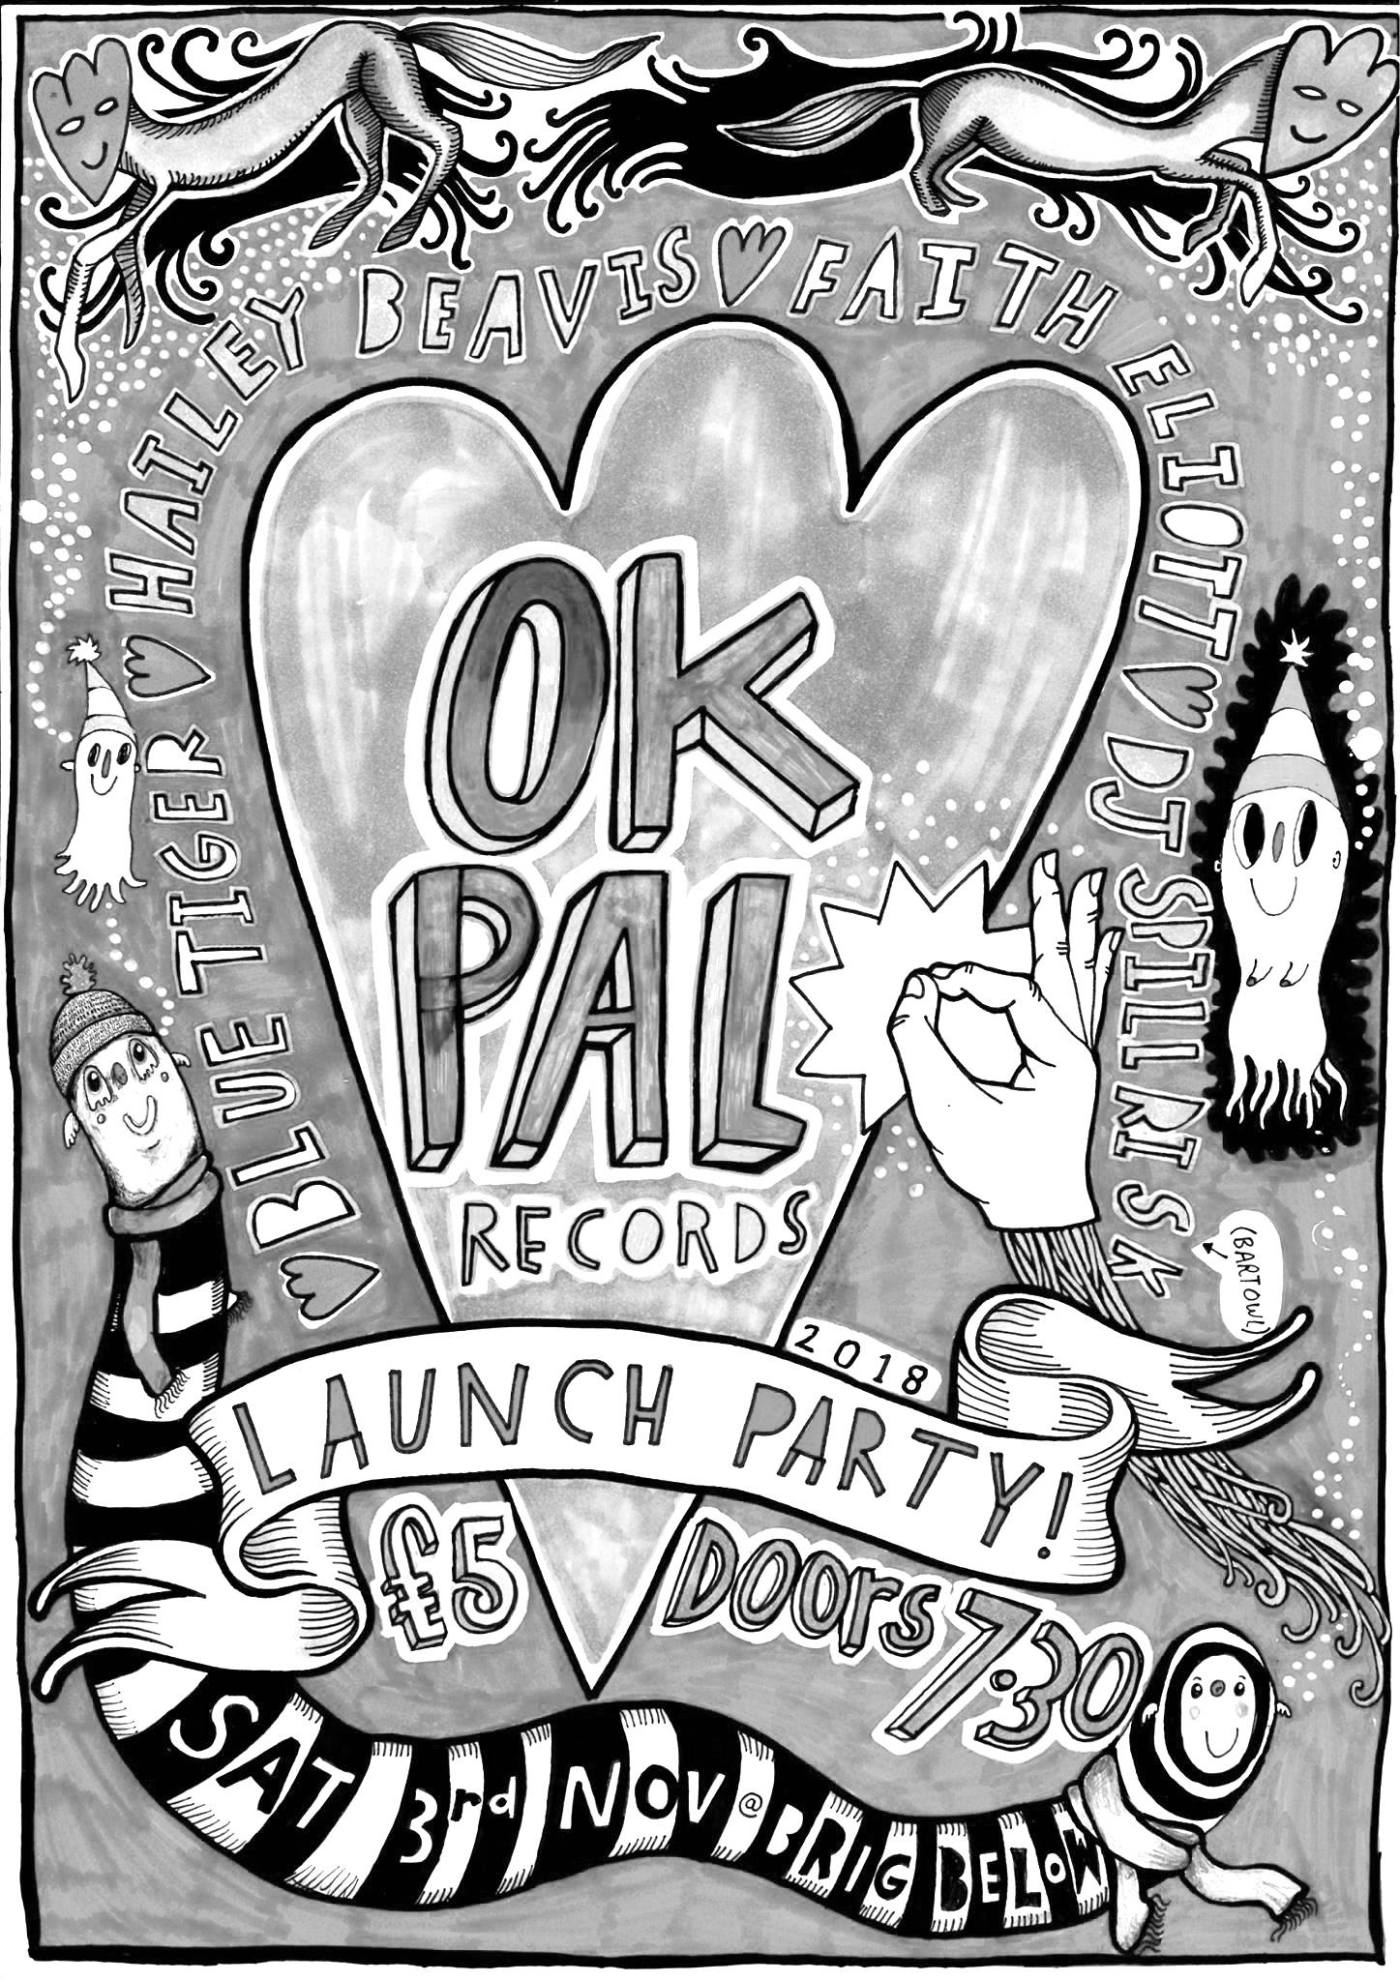 Greyscale image. The words OK PAL Records are in the centre of the image, within a grey love heart. A banner reads Launch Party. The poster informs us the event is on Saturday 3rd November at Brig Below, that entry is £5, doors open at 7.30pm, and Hailey Beavis and Faith Eliot will be playing. Around the image are happy, smiley creatures wearing hats.